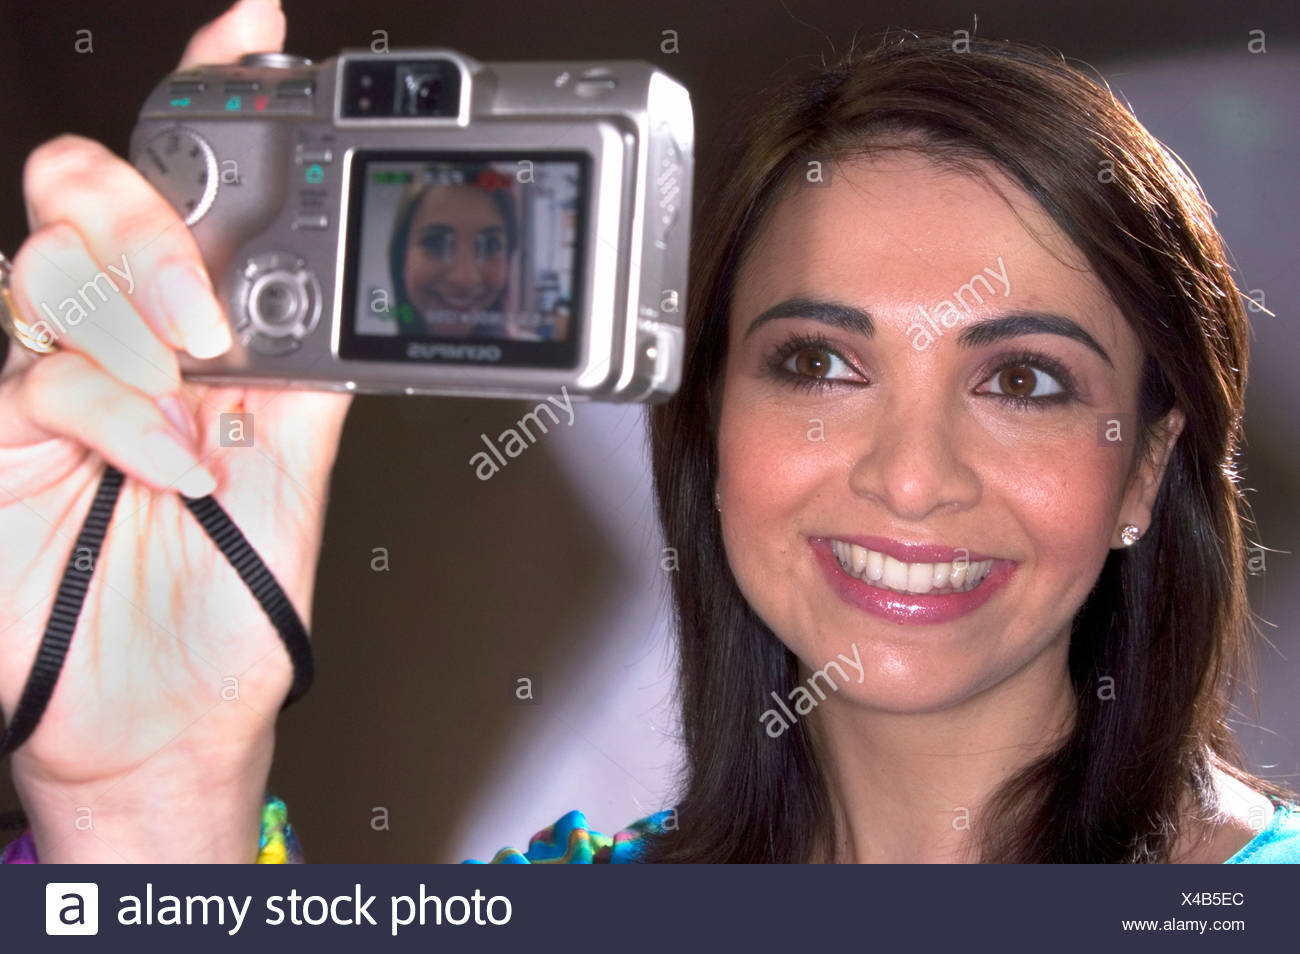 photo digital camera photo camera woman portrait face laughing laughter selfportrait - Stock Image